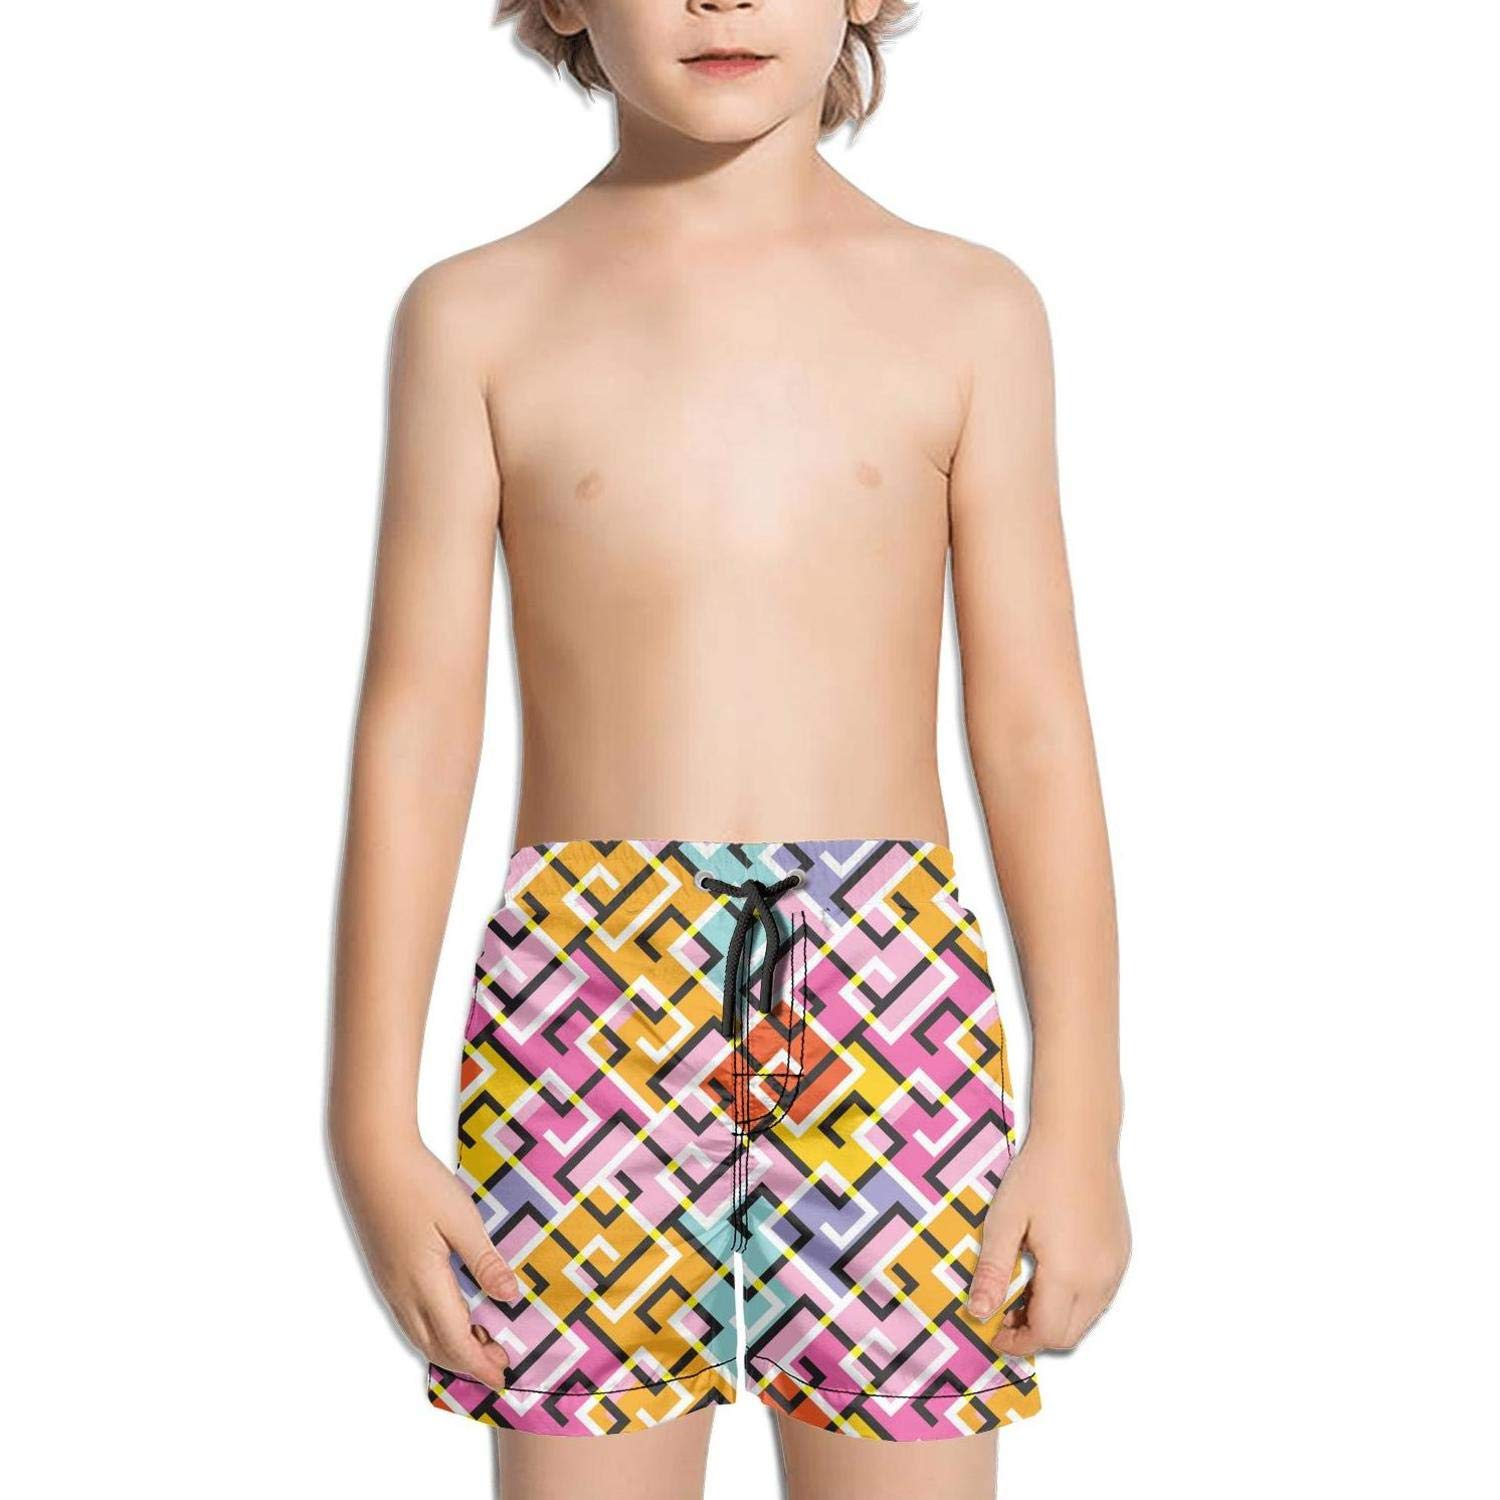 BingGuiC Boys Quick Dry Shorts Abstract Vintage 90s Style Colorful Fashion Swim Trunks